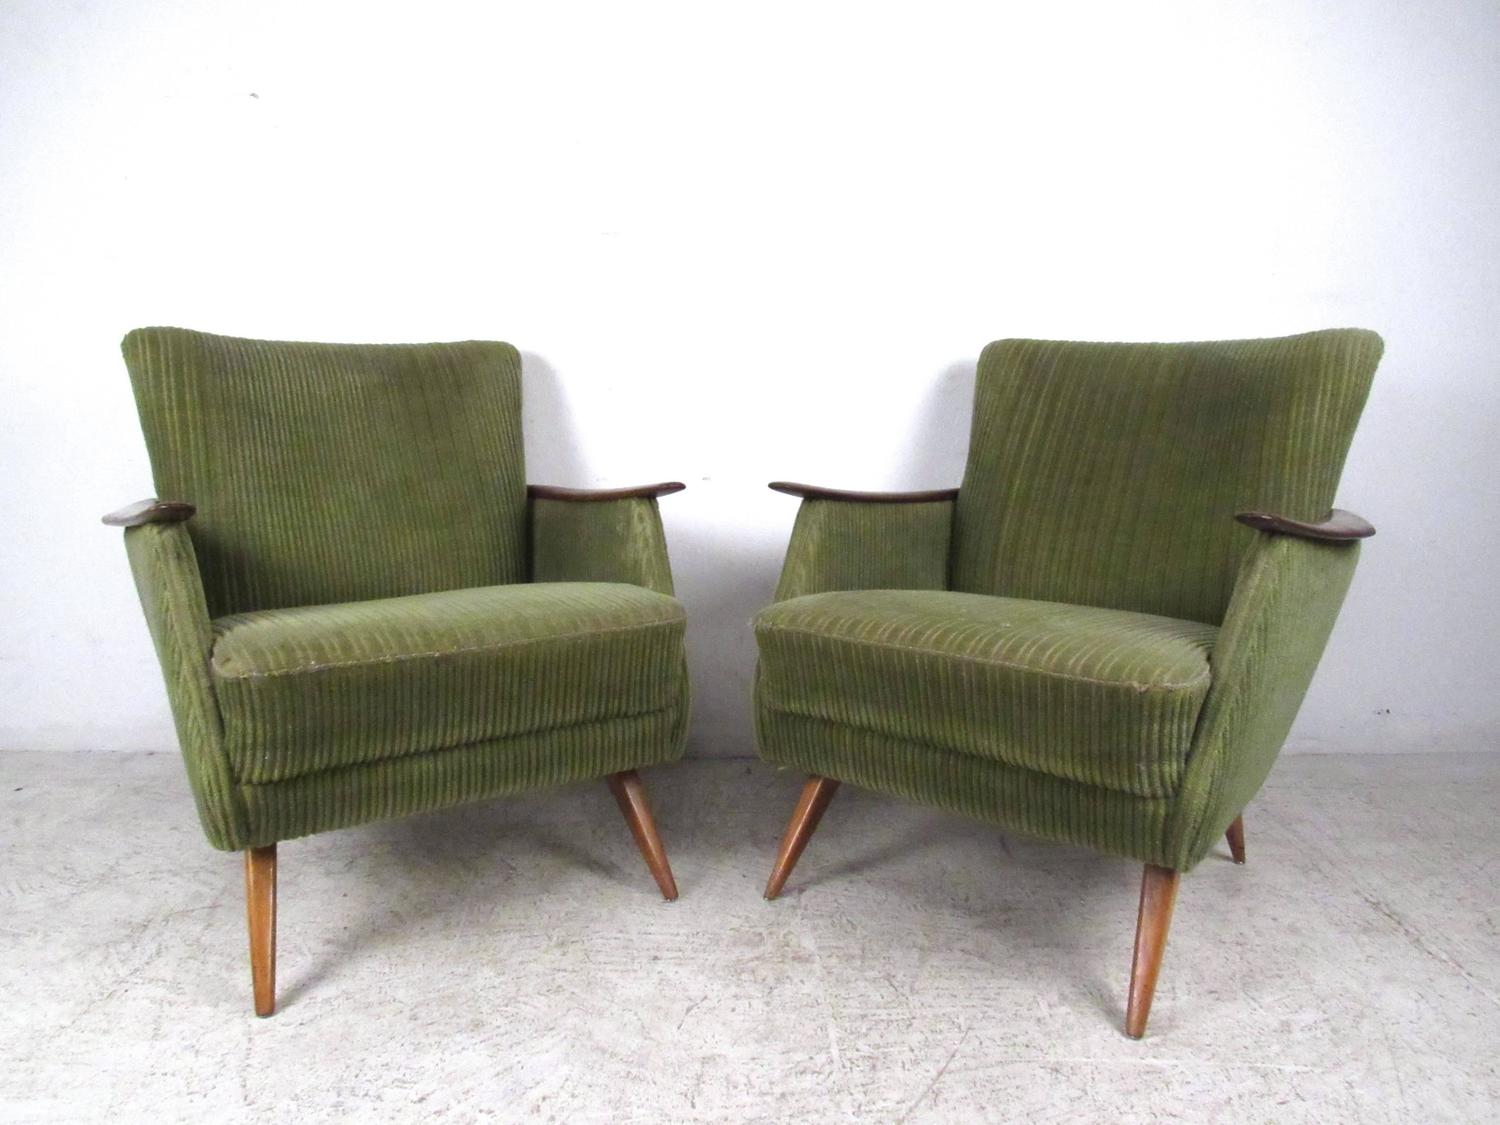 Unique Mid Century Modern Danish Lounge Chairs For Sale At 1stdibs